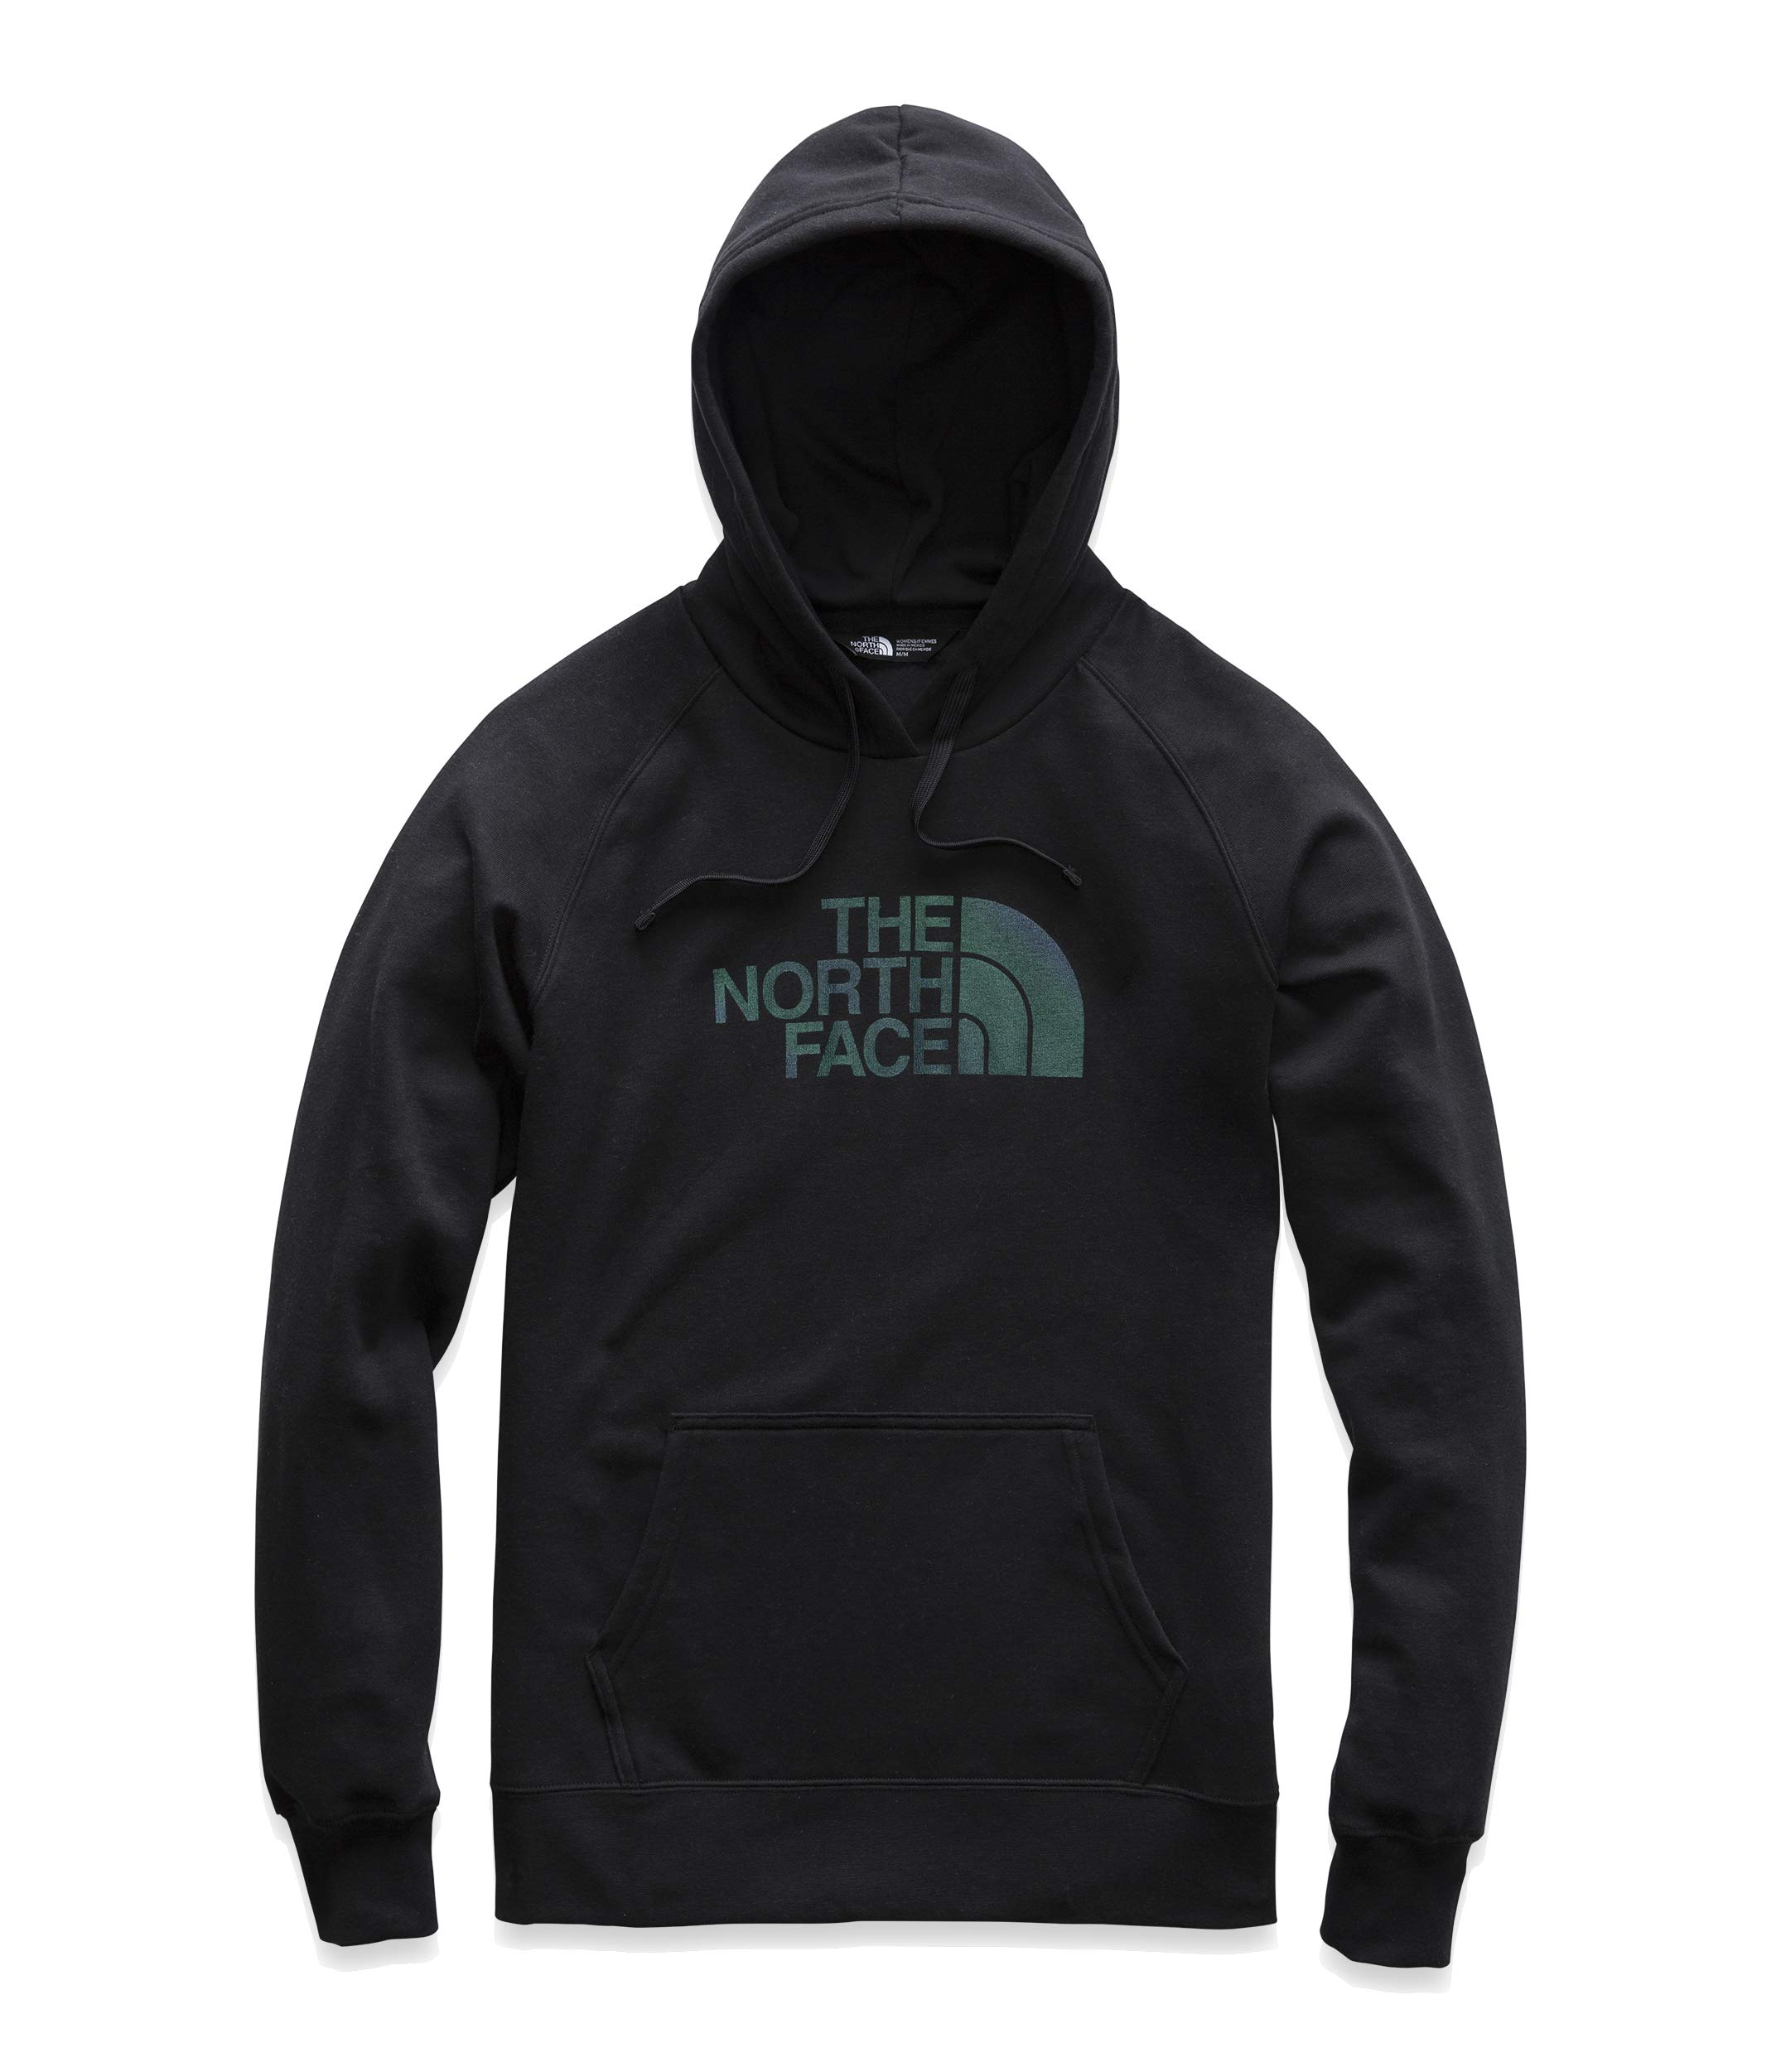 The North Face Women's Half Dome Pullover Hoodie, TNF Black/Iridescent Multi, Size M by The North Face